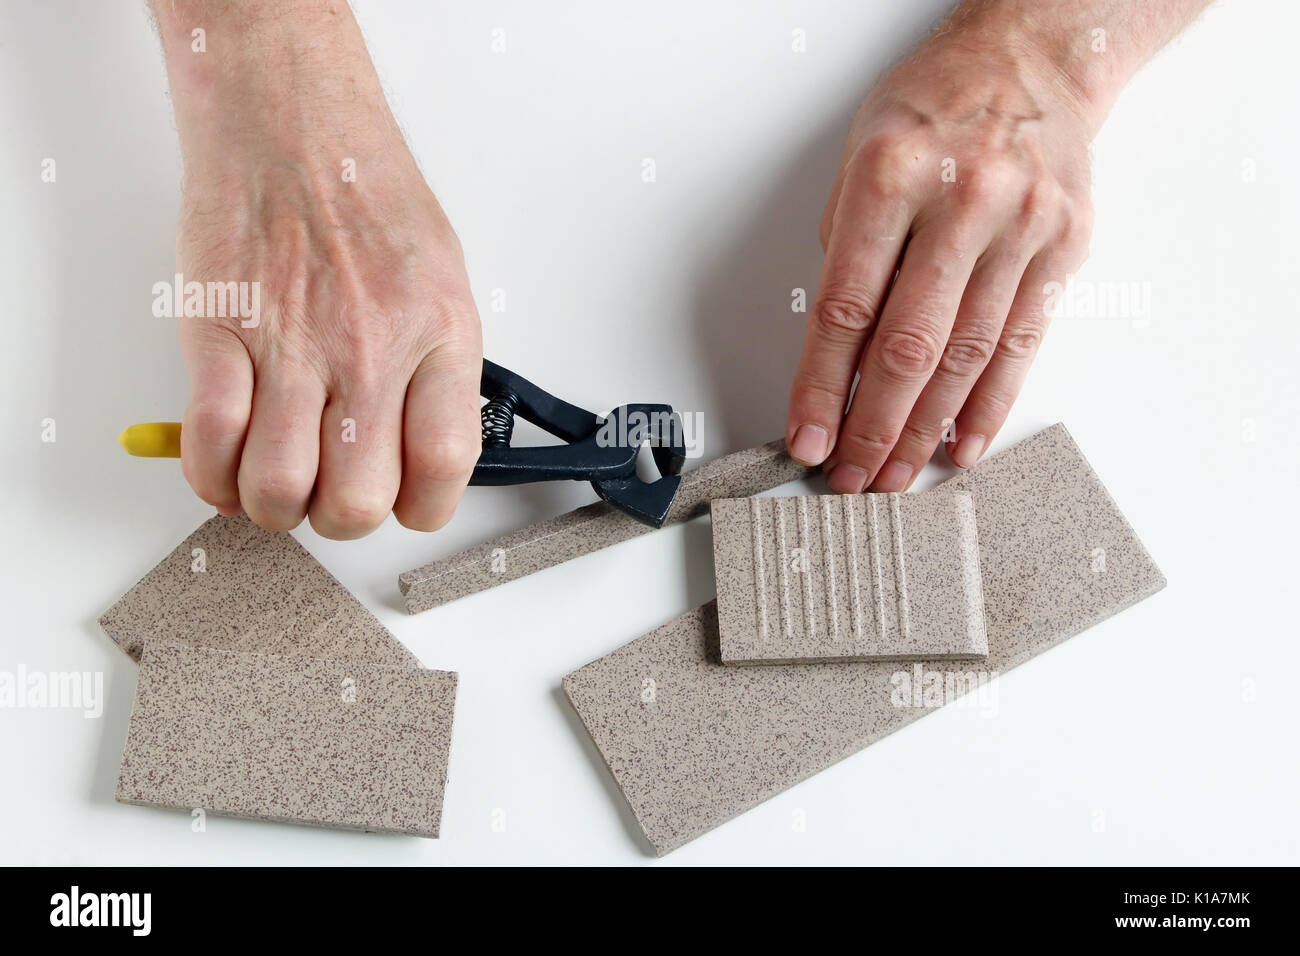 Cutting ceramic tile by hand